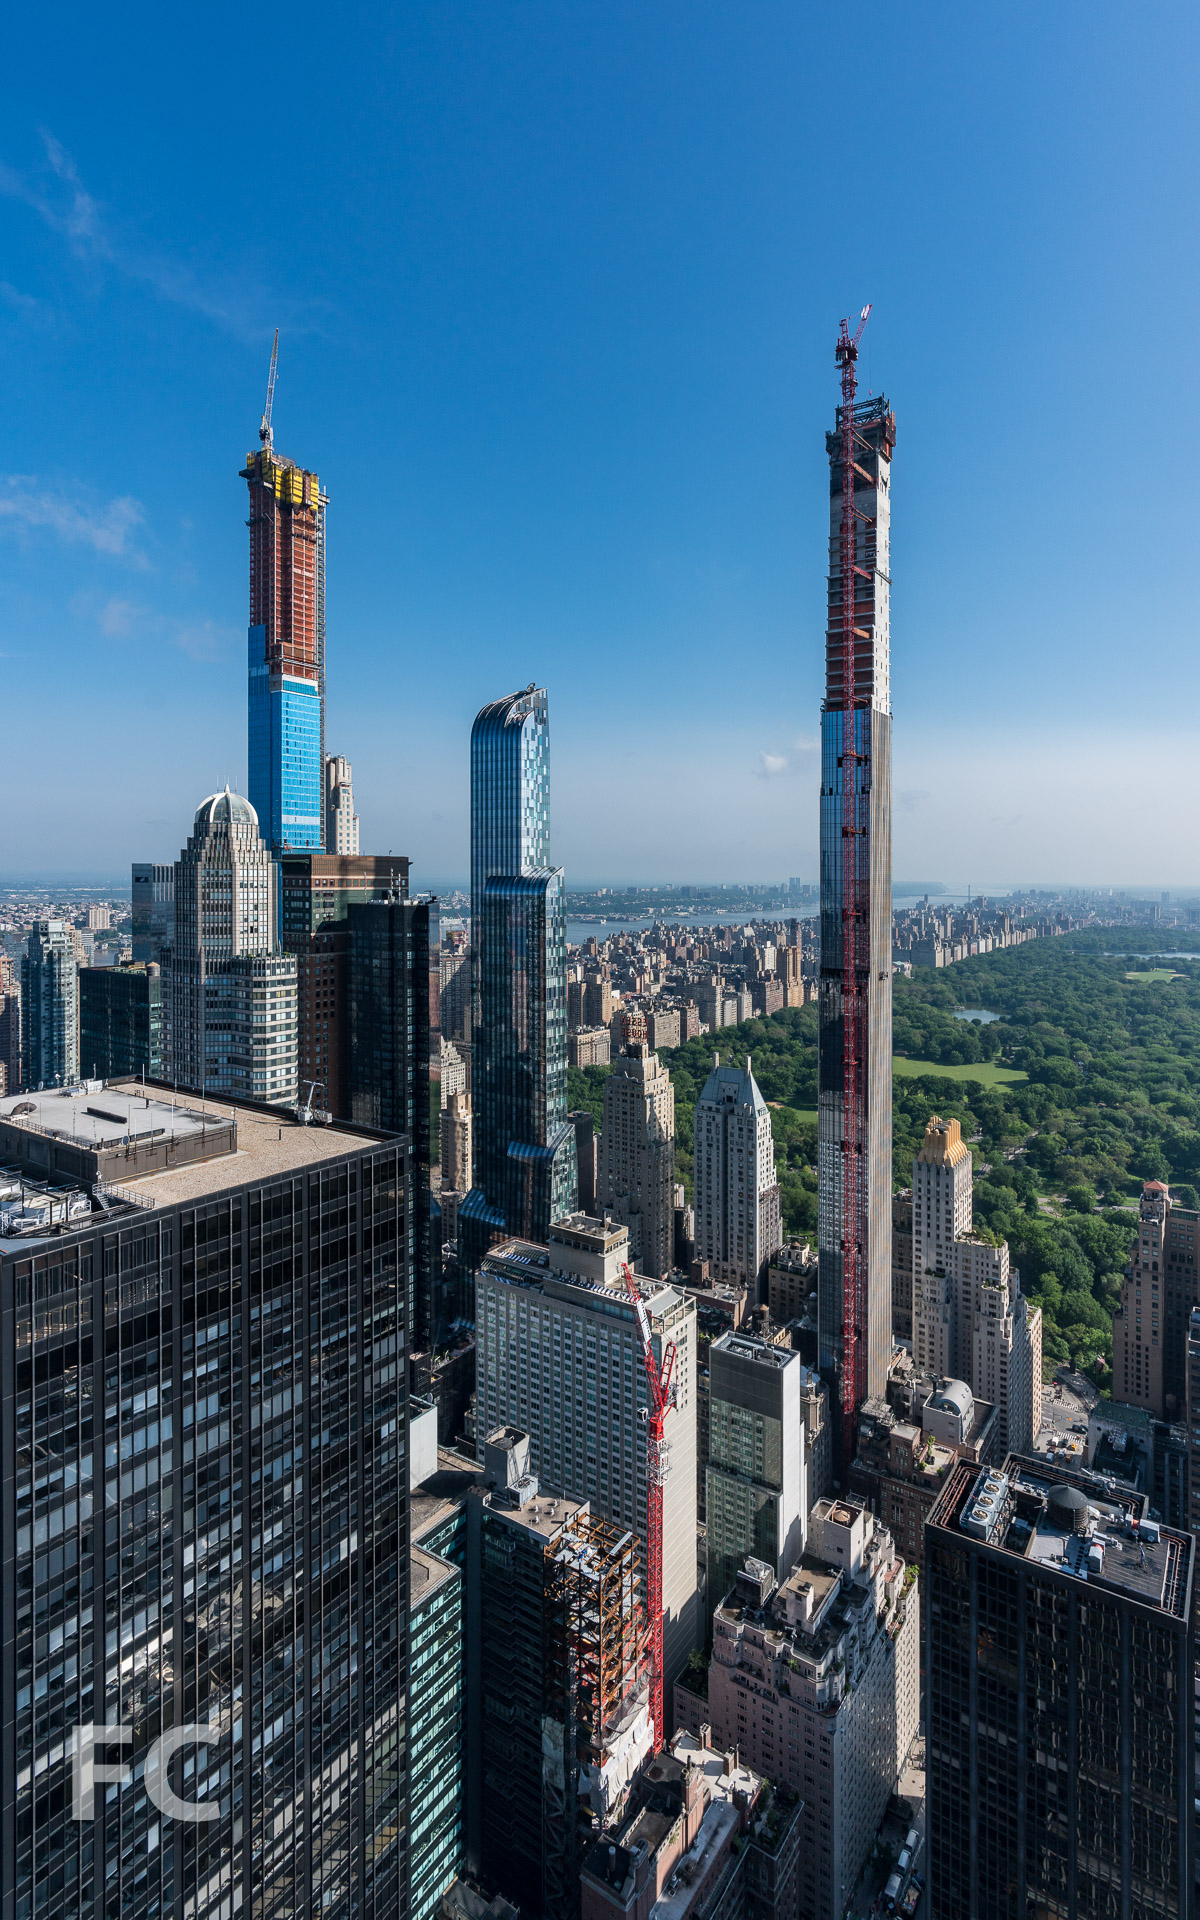 View northwest towards the West 57th Street towers and Central Park from an upper floor apartment.